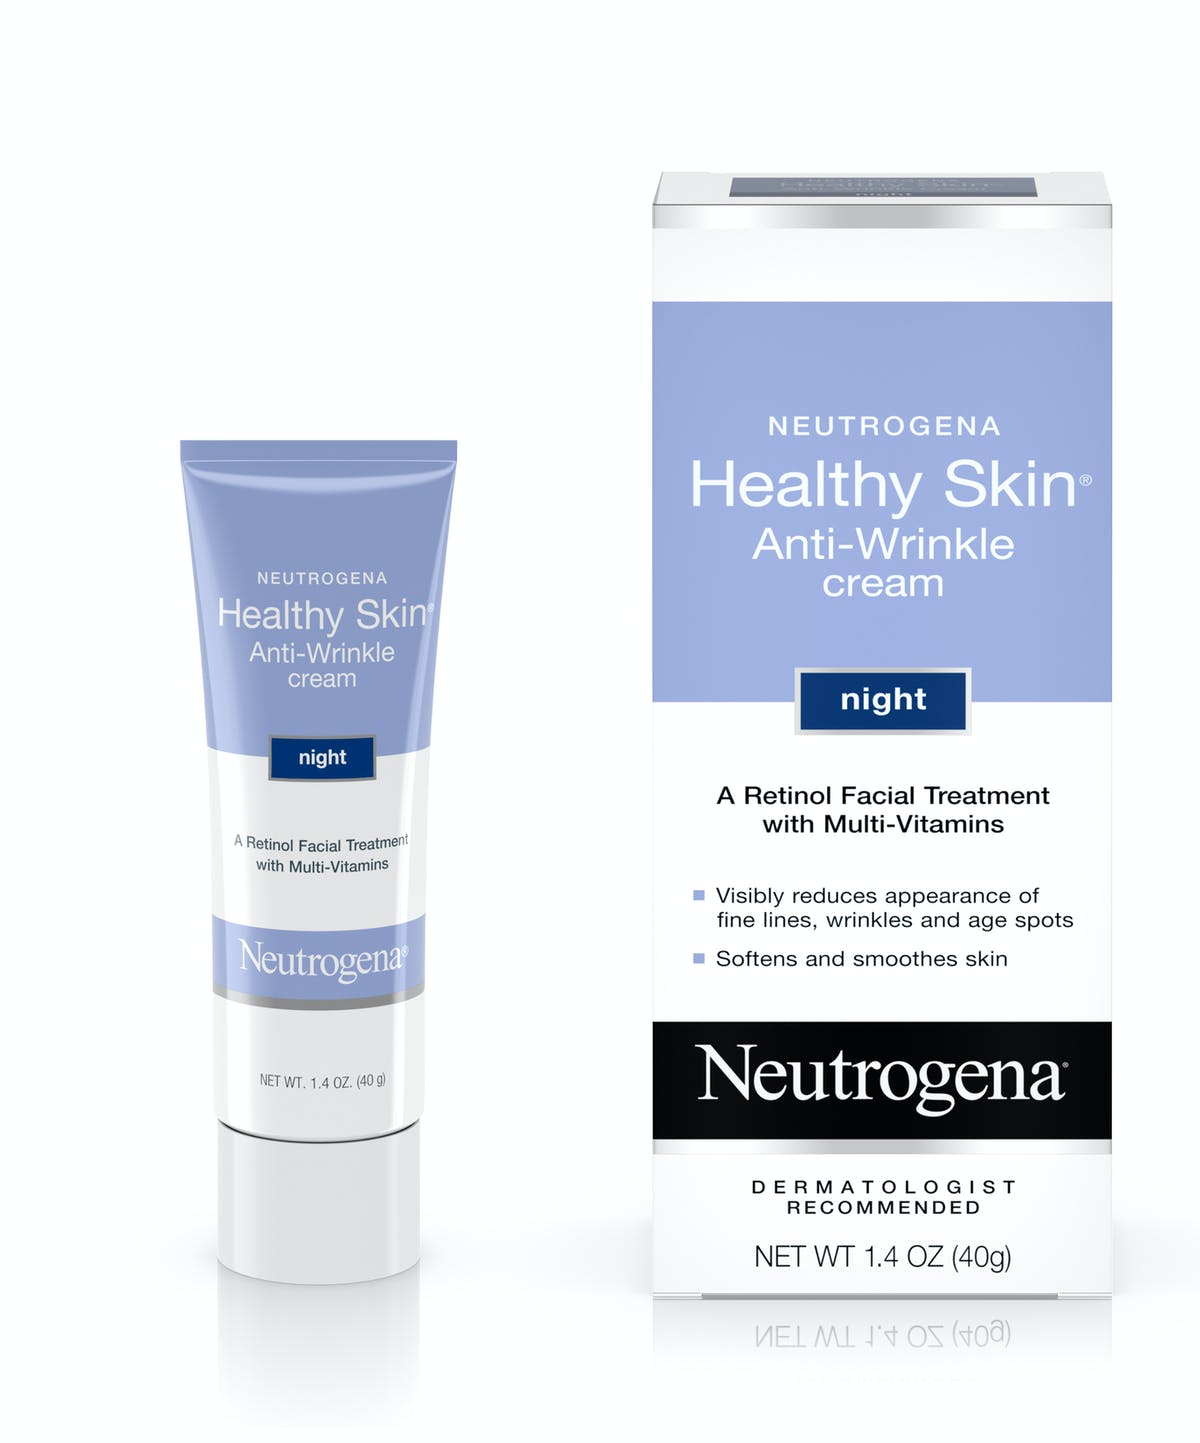 NEUTROGENA HEALTHY SKIN ANTI- WRINKLE CREAM NIGHT